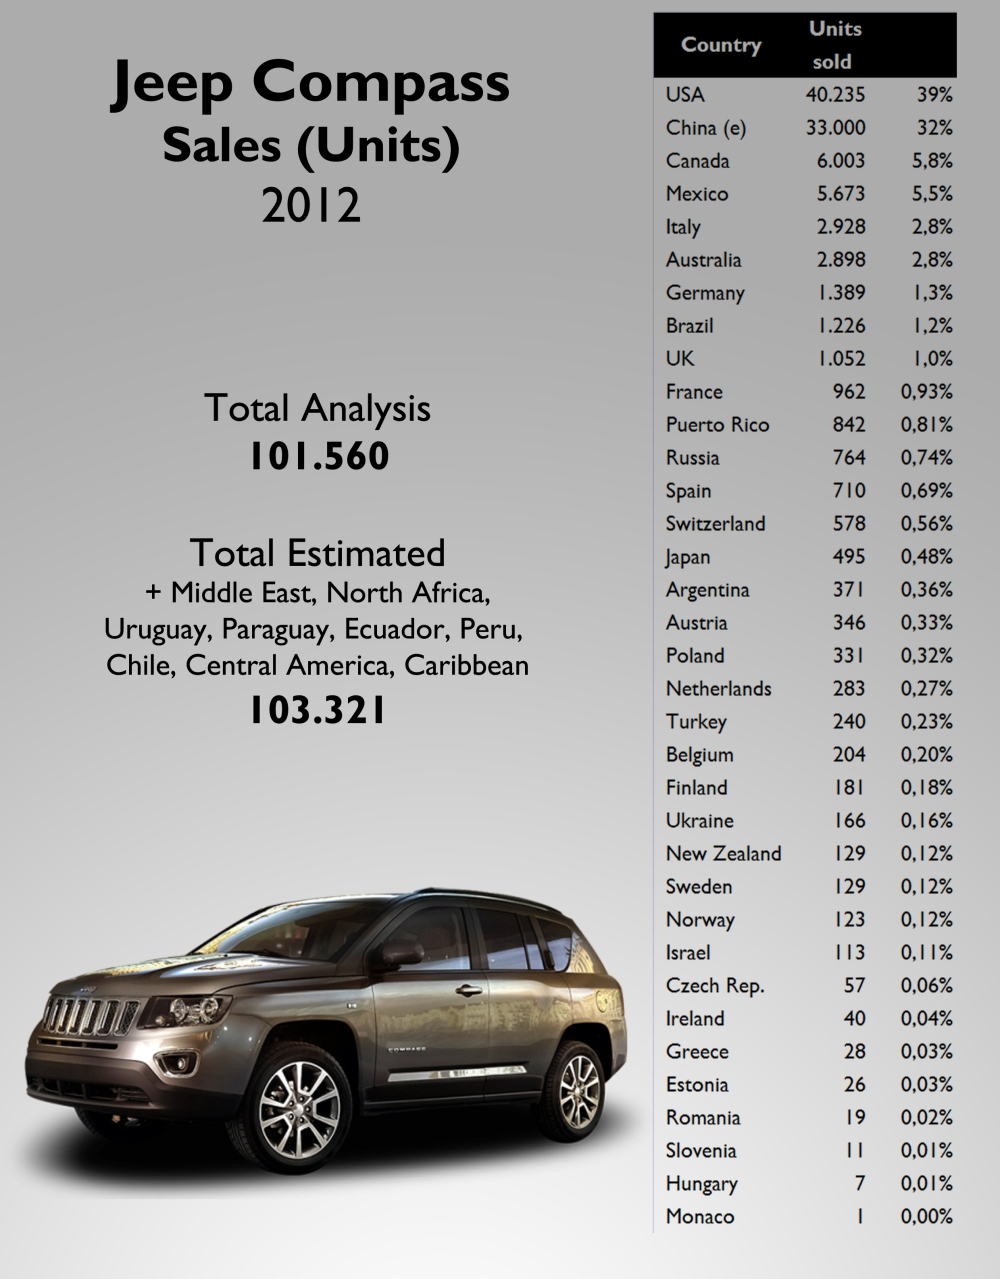 Compass sales were quite balanced thanks to China, Canada, and Mexico. Source: see at the bottom of this post.